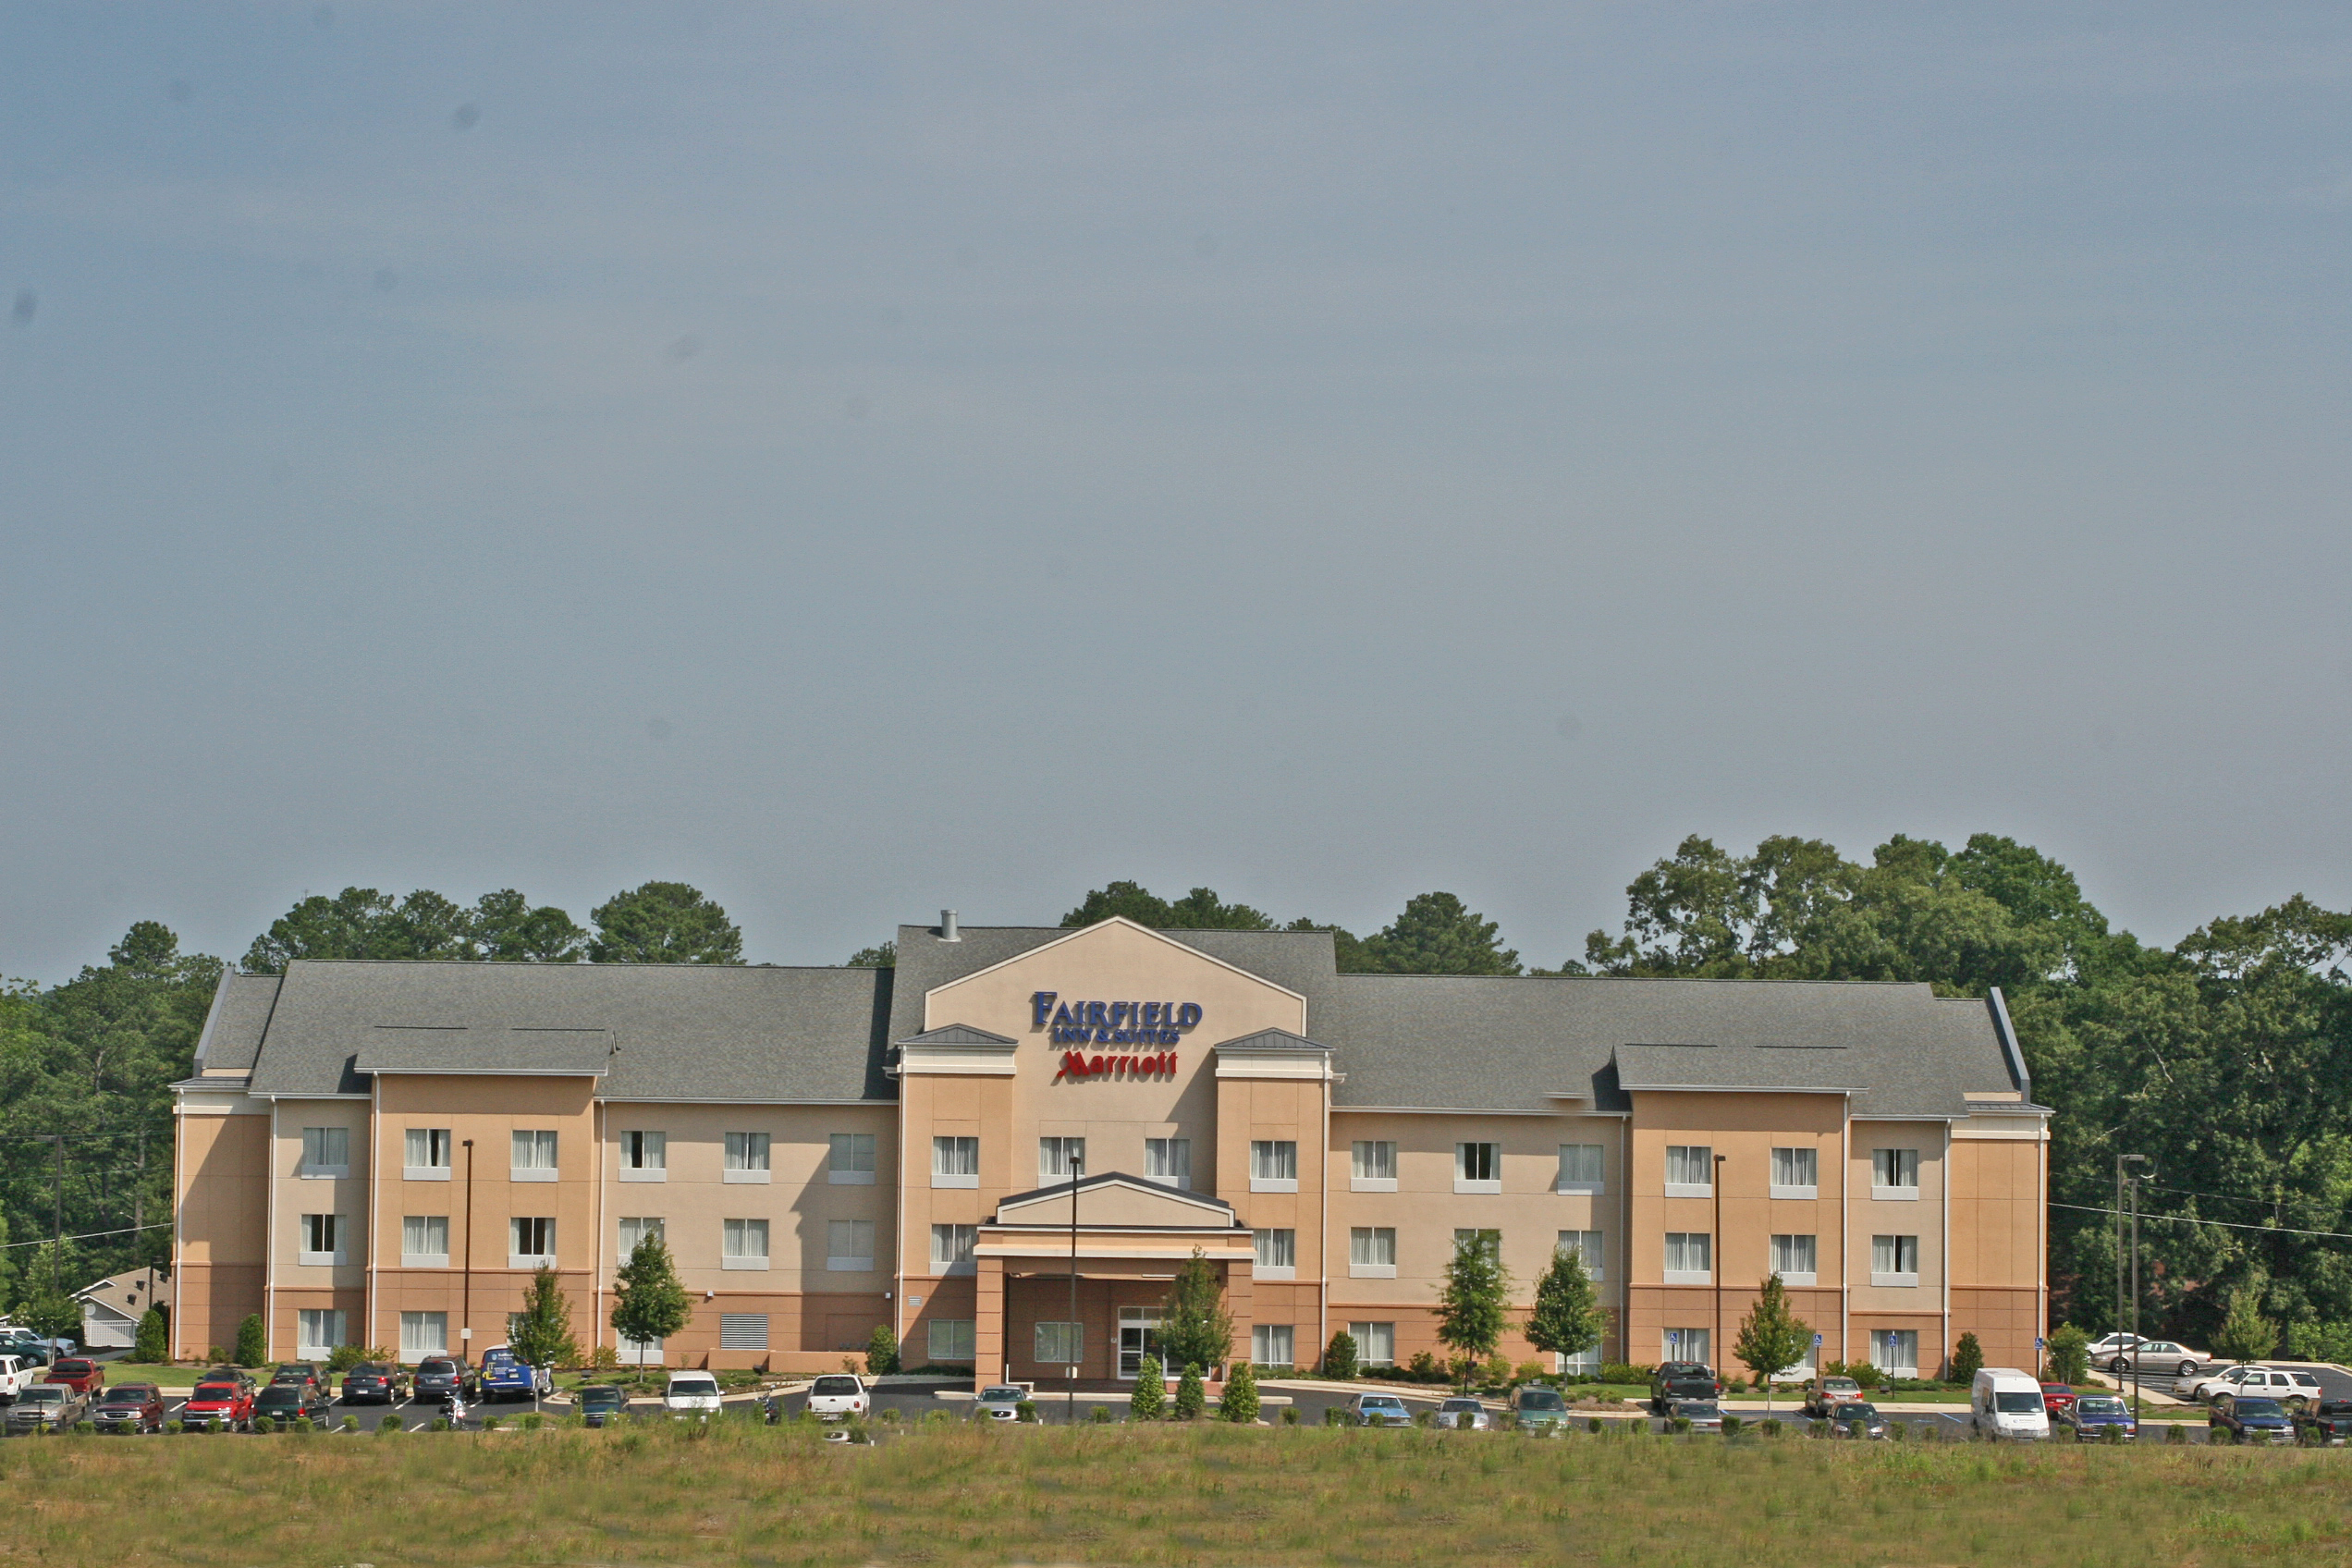 https://alabama-travel.s3.amazonaws.com/partners-uploads/photo/image/596193ec53ad9a42ef000006/fairfield_inn___suites_fultondale_014.jpg